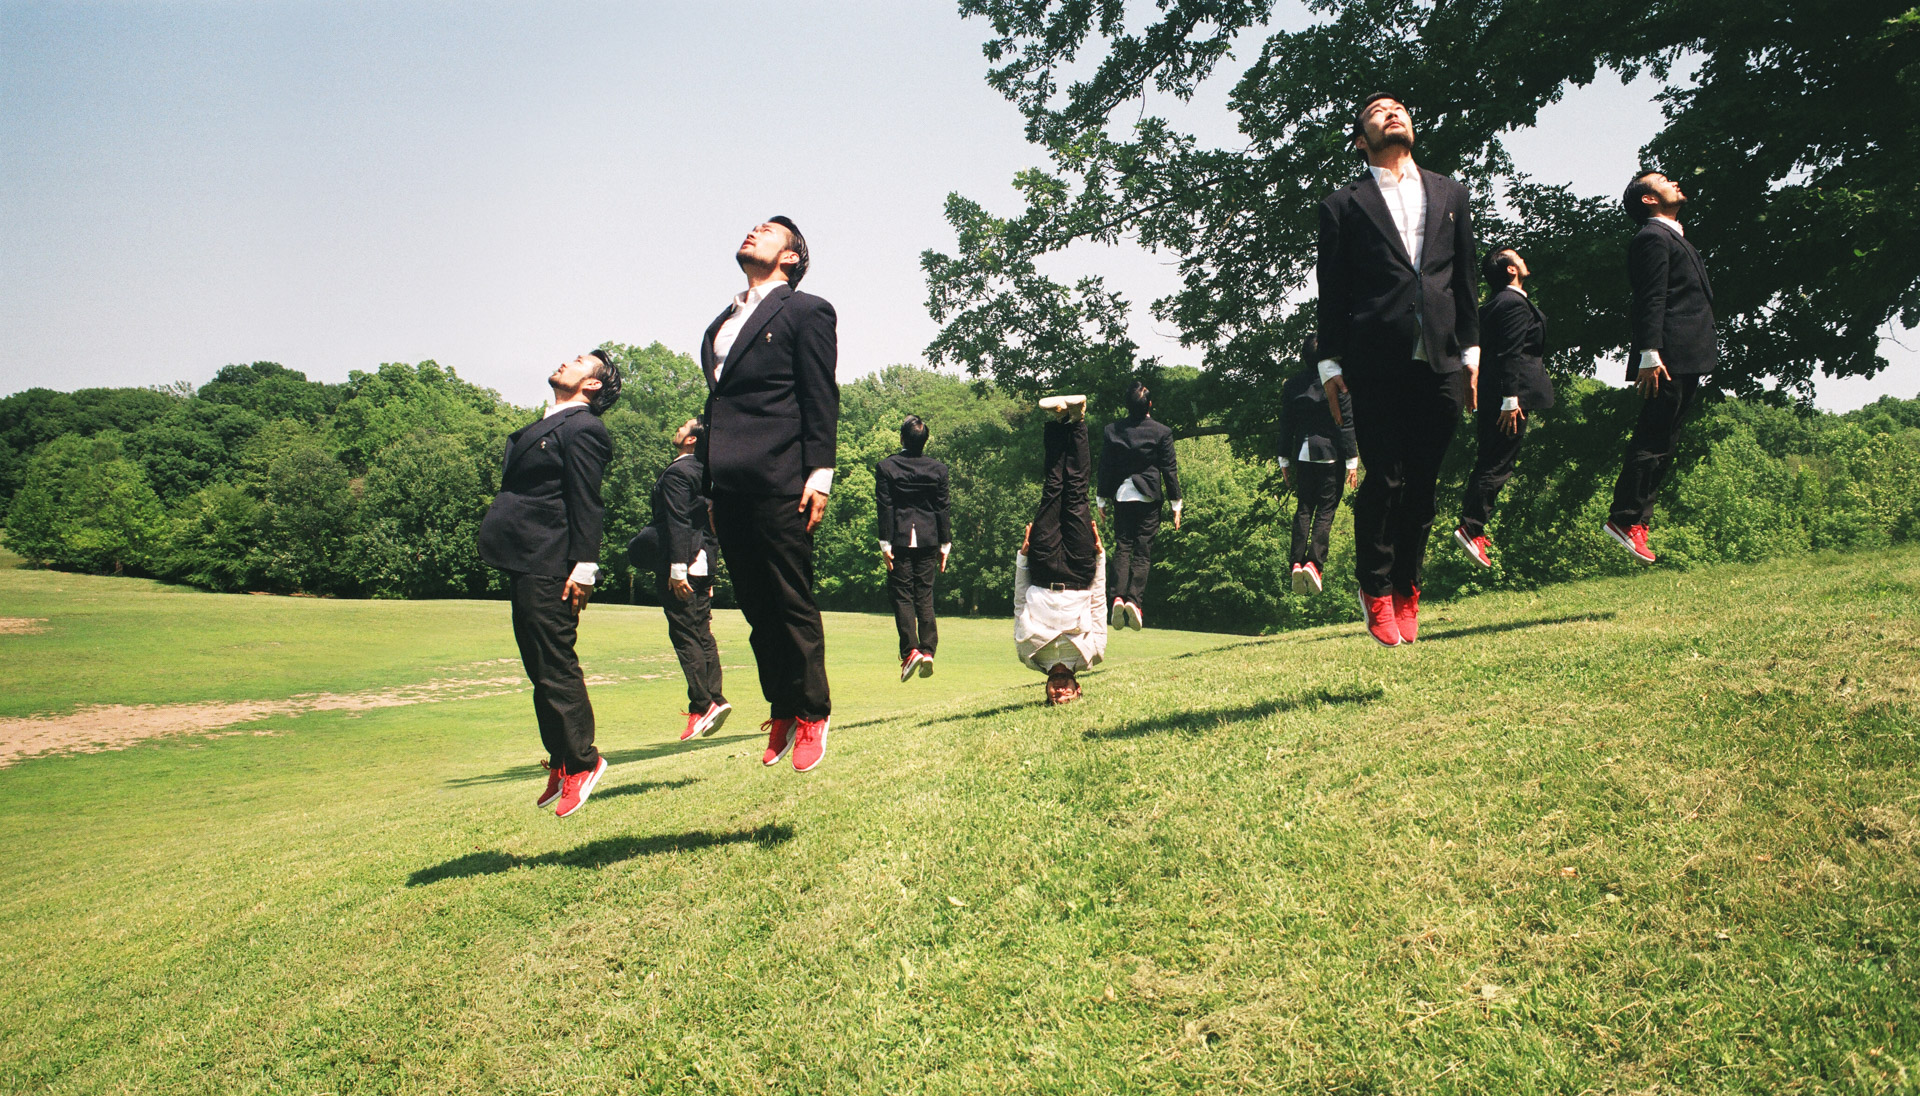 A circle of Asians in the dark suits jumping straight up, with an asian in a white suit standing on his head in the center.